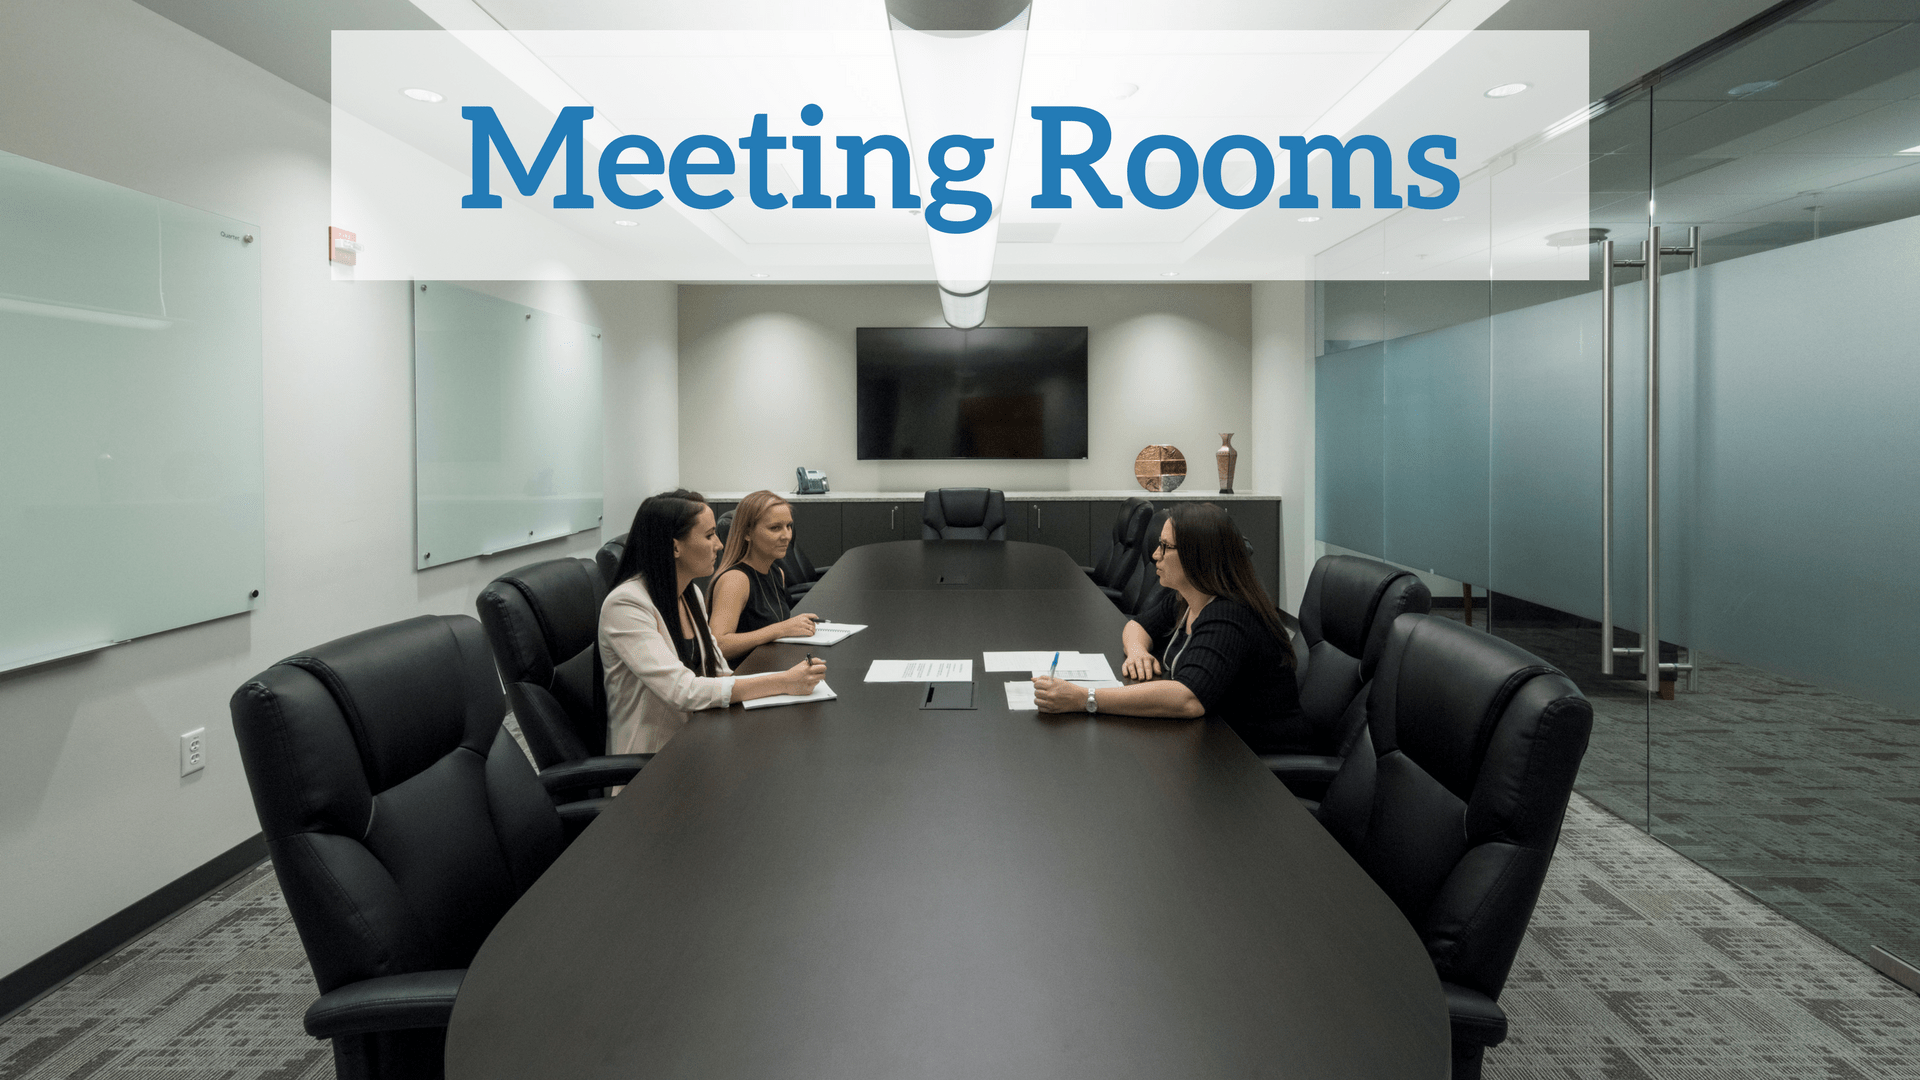 Stupendous Professional Meeting Rooms With Essential Services To Best Image Libraries Weasiibadanjobscom